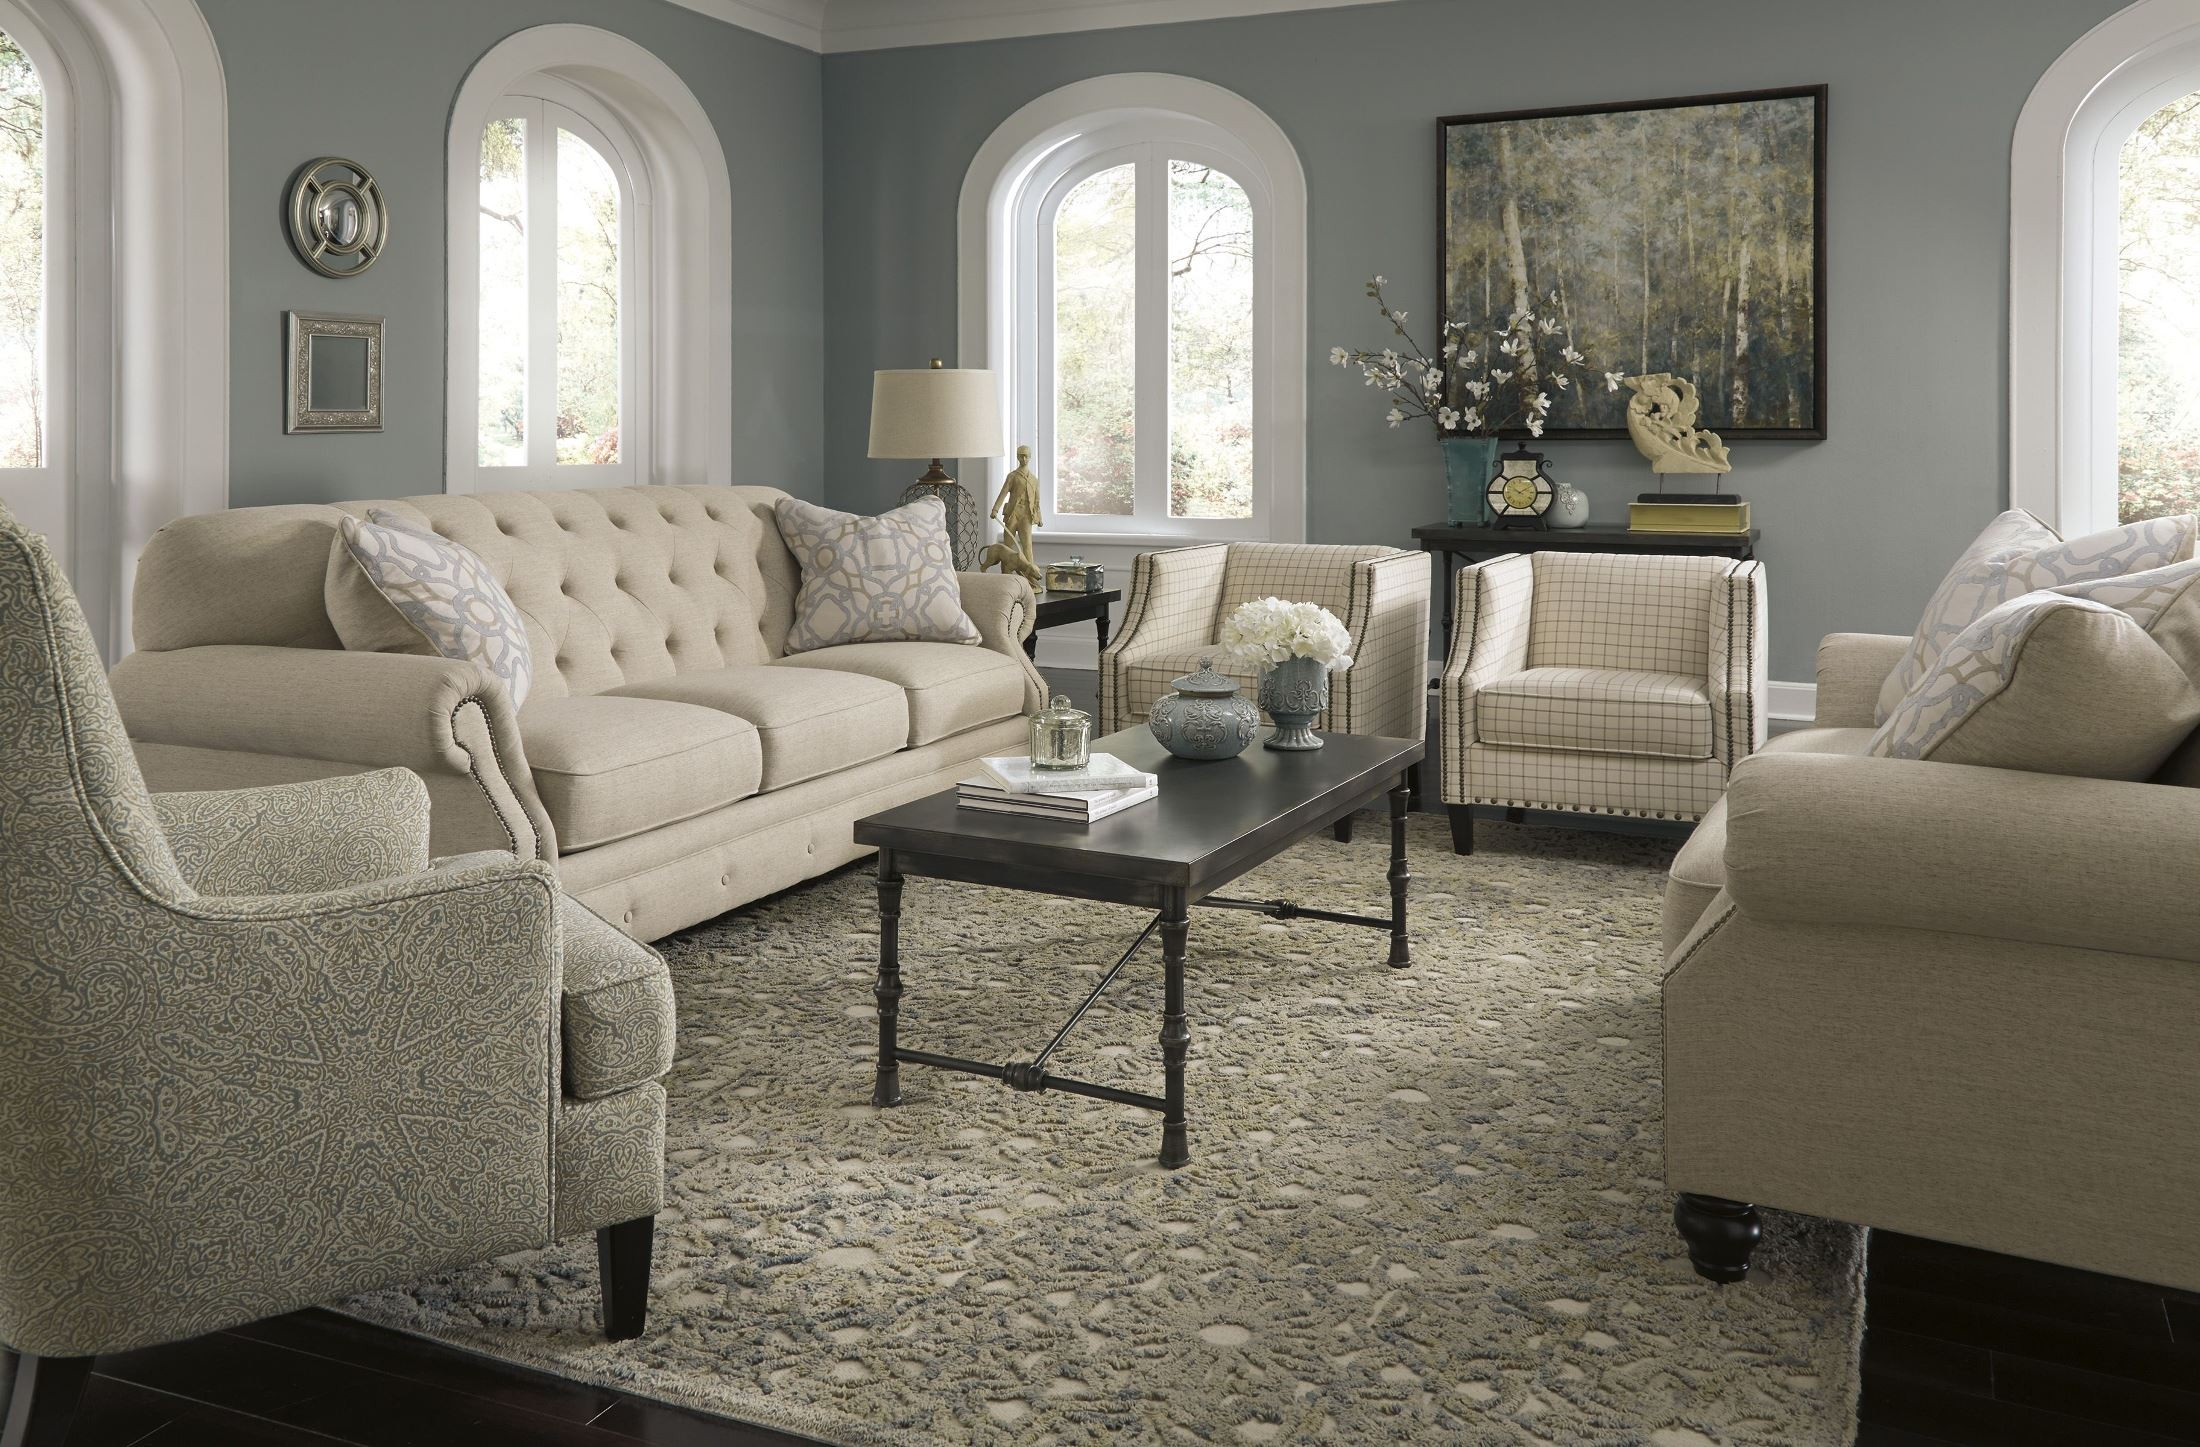 Living Room Furniture: Kieran Natural Living Room Set From Ashley (4400038